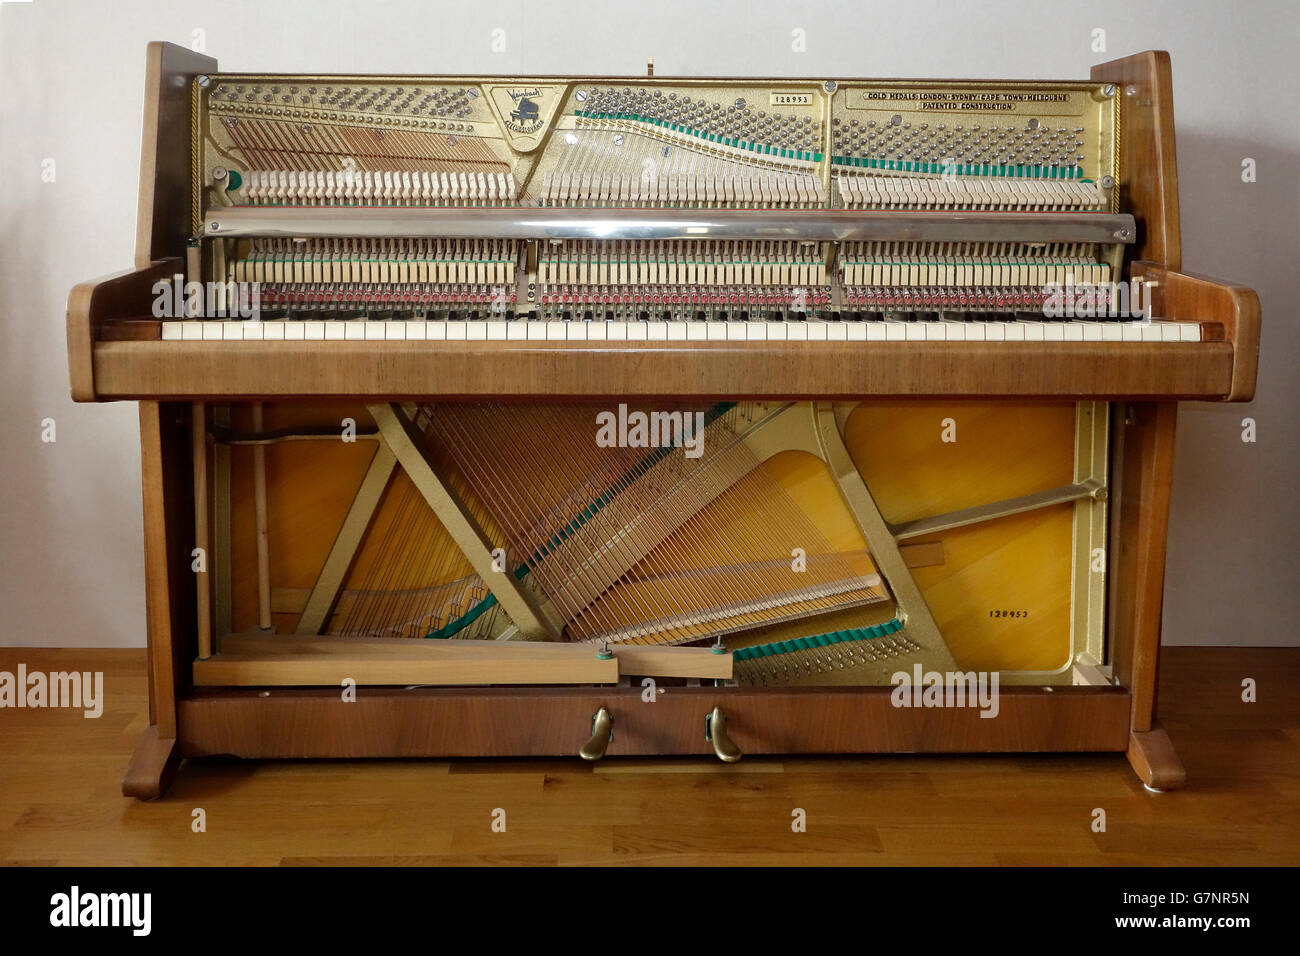 Dismantled upright piano stripped from front doors and fall showing inner mechanisms and strings. & Dismantled upright piano stripped from front doors and fall showing ...